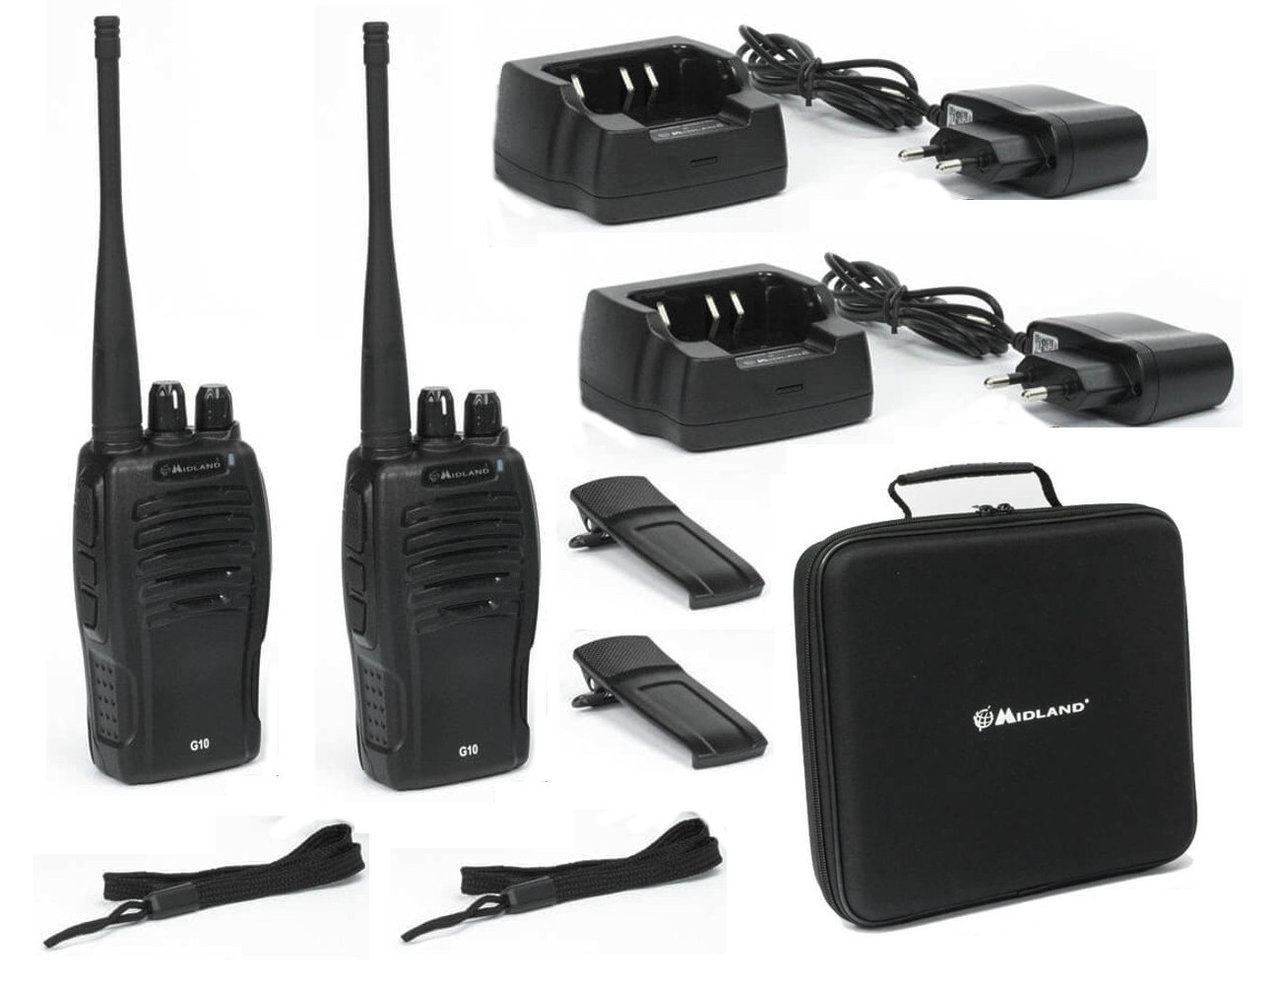 2 Walkie Talkies Midland G10 con maleta de transporte